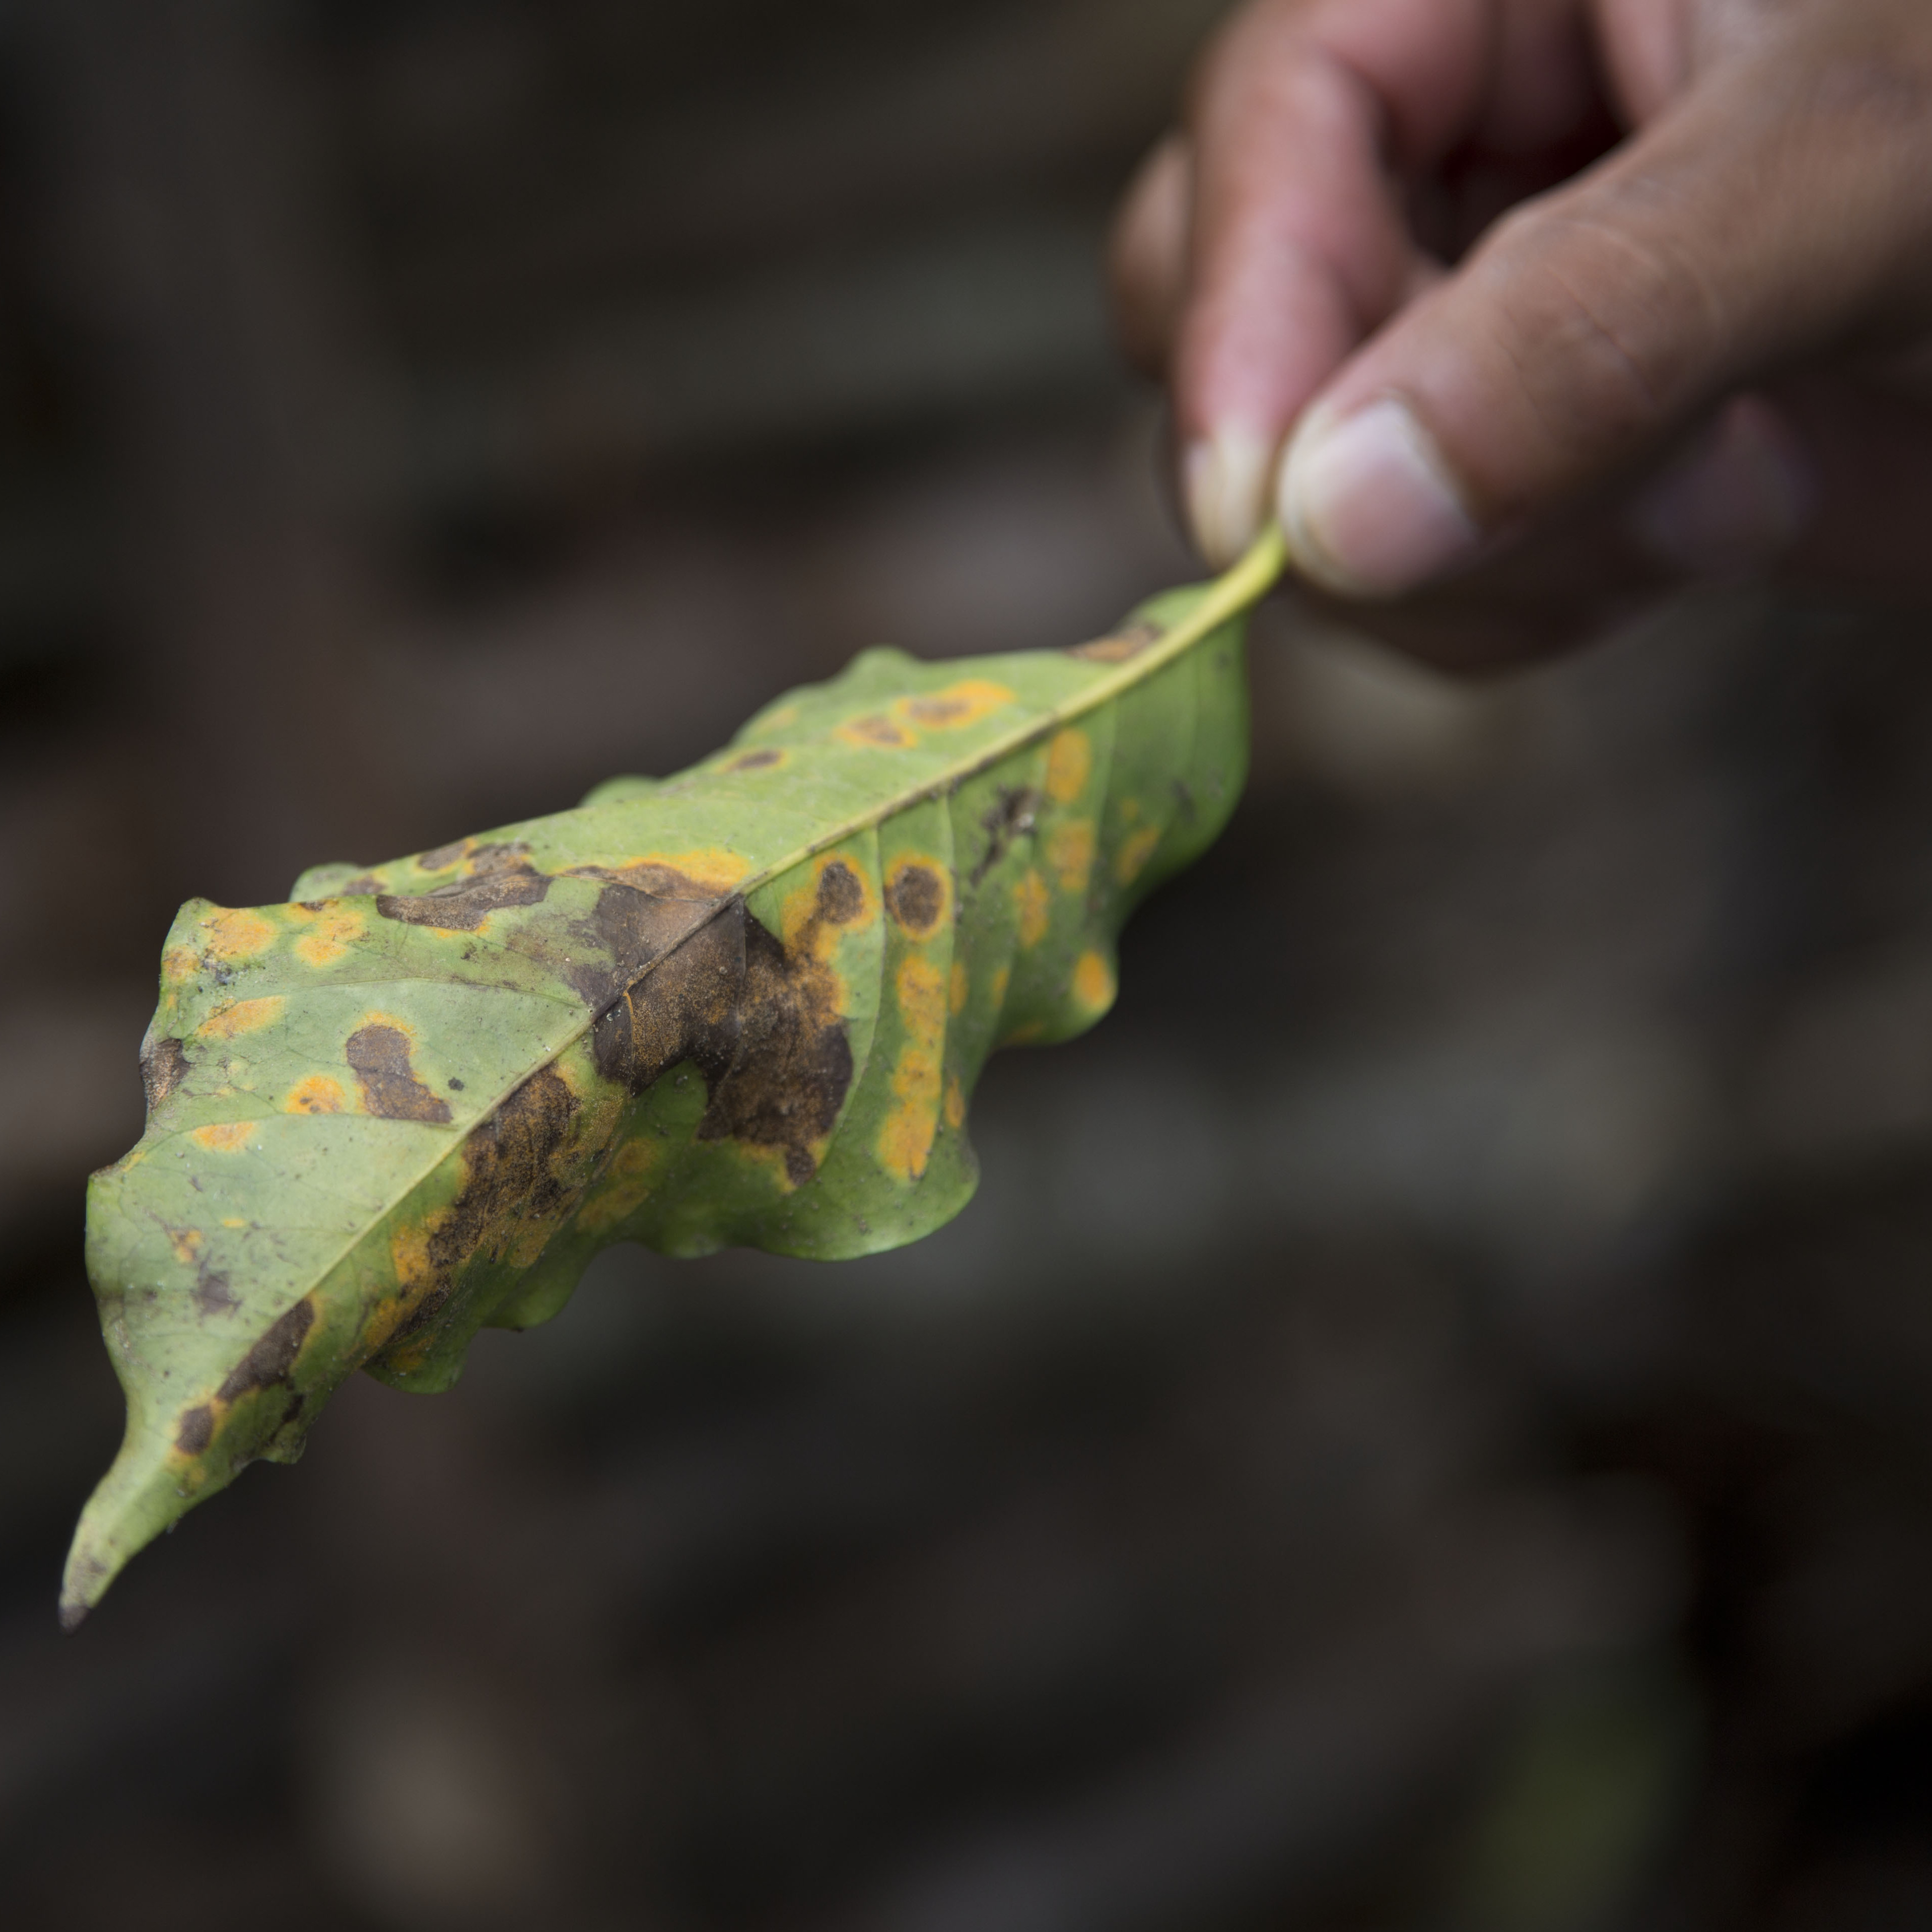 A coffee leaf damaged by coffee rust fungus in Ciudad Vieja, Guatemala, in May 2014. The airborne disease strikes coffee plants, flecking their leaves with spots and causing them to wither and fall off.